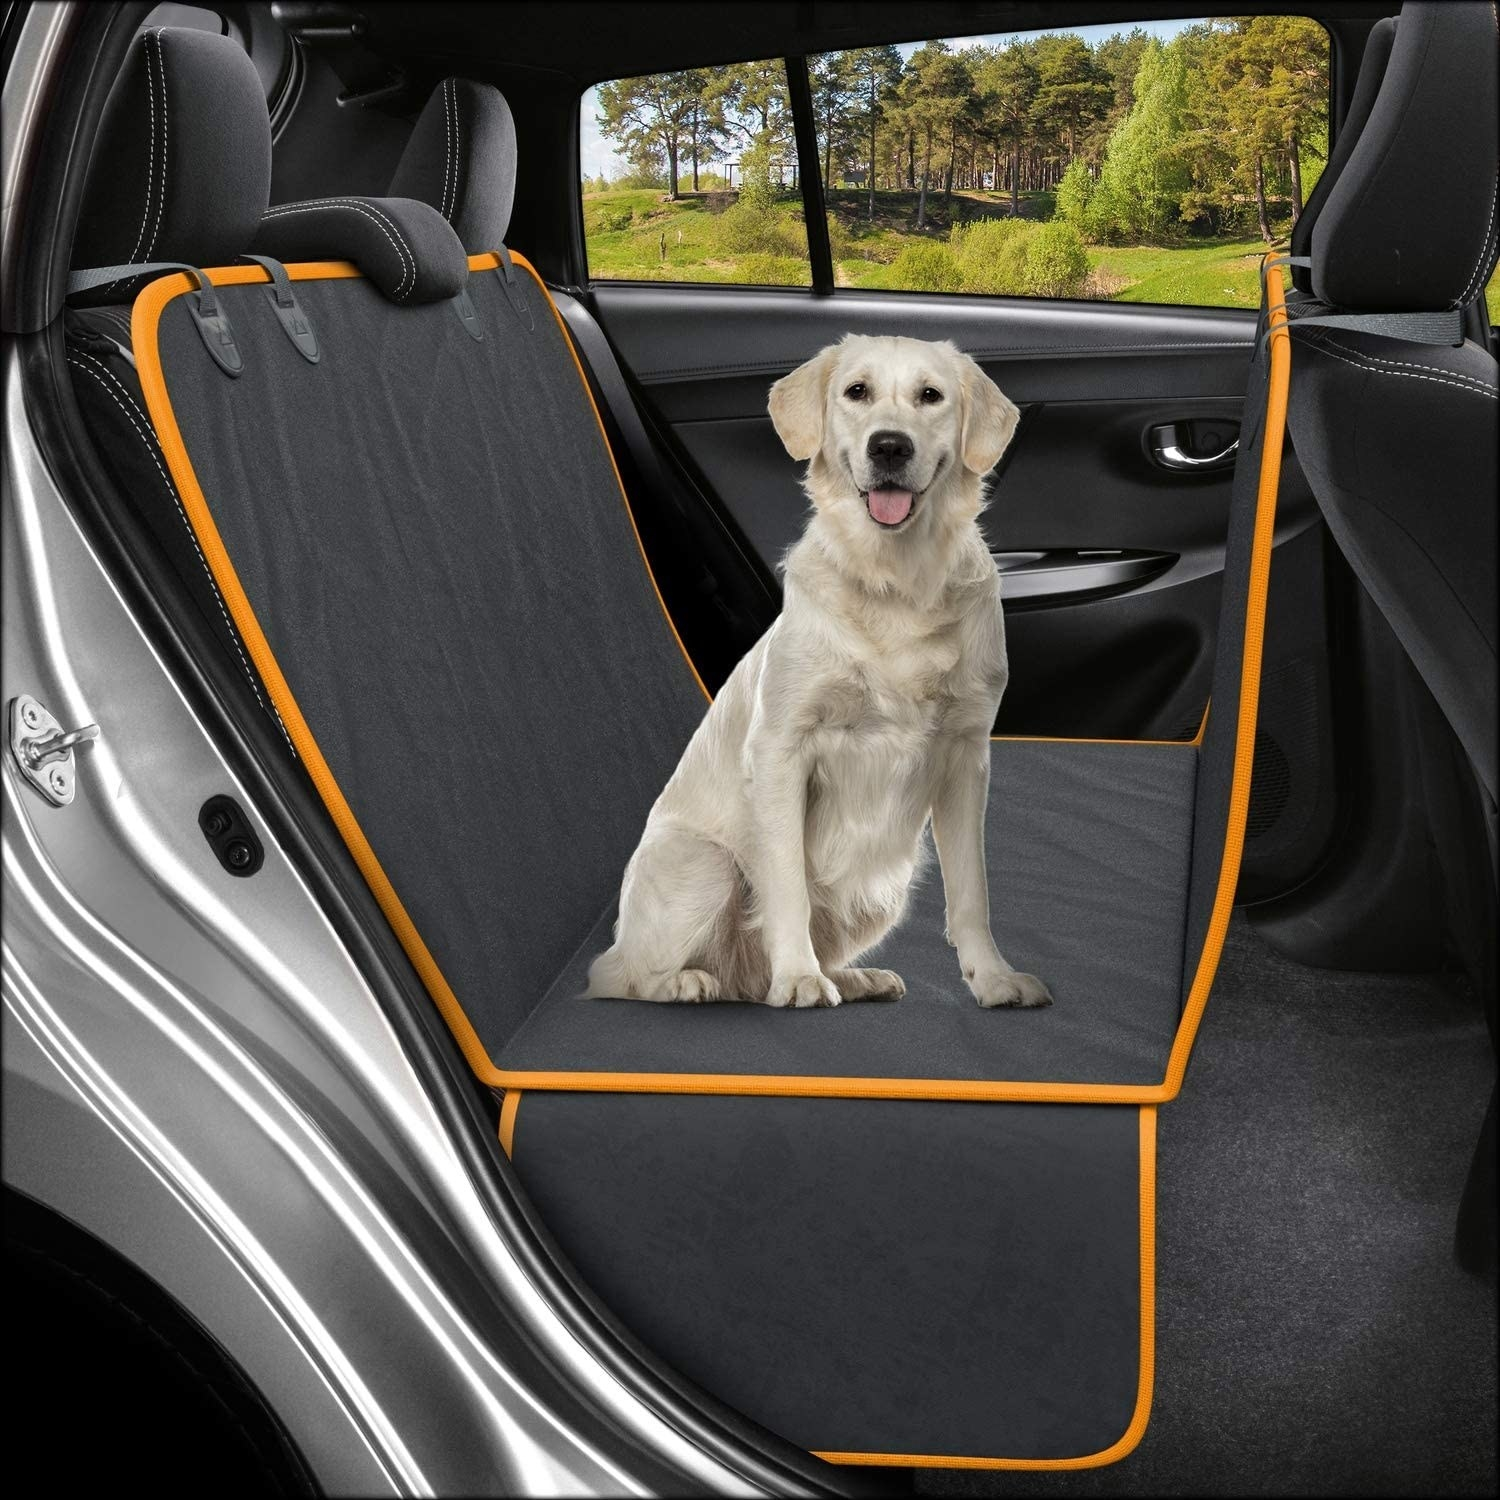 Dog sits on the black and orange seat cover